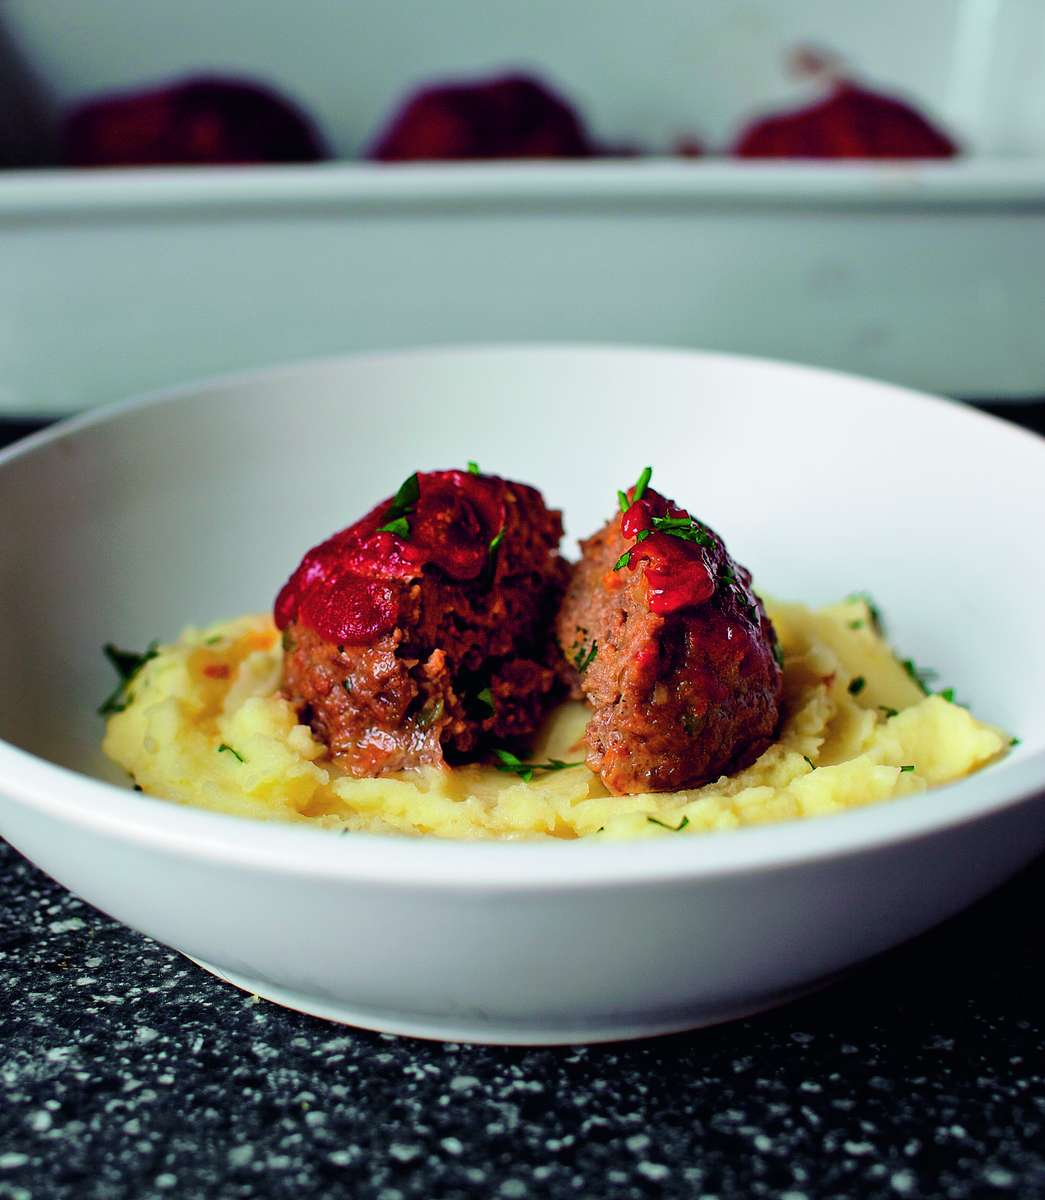 Tomato-glazed meatloaves with Mashed Potatoes - The Happy Foodie